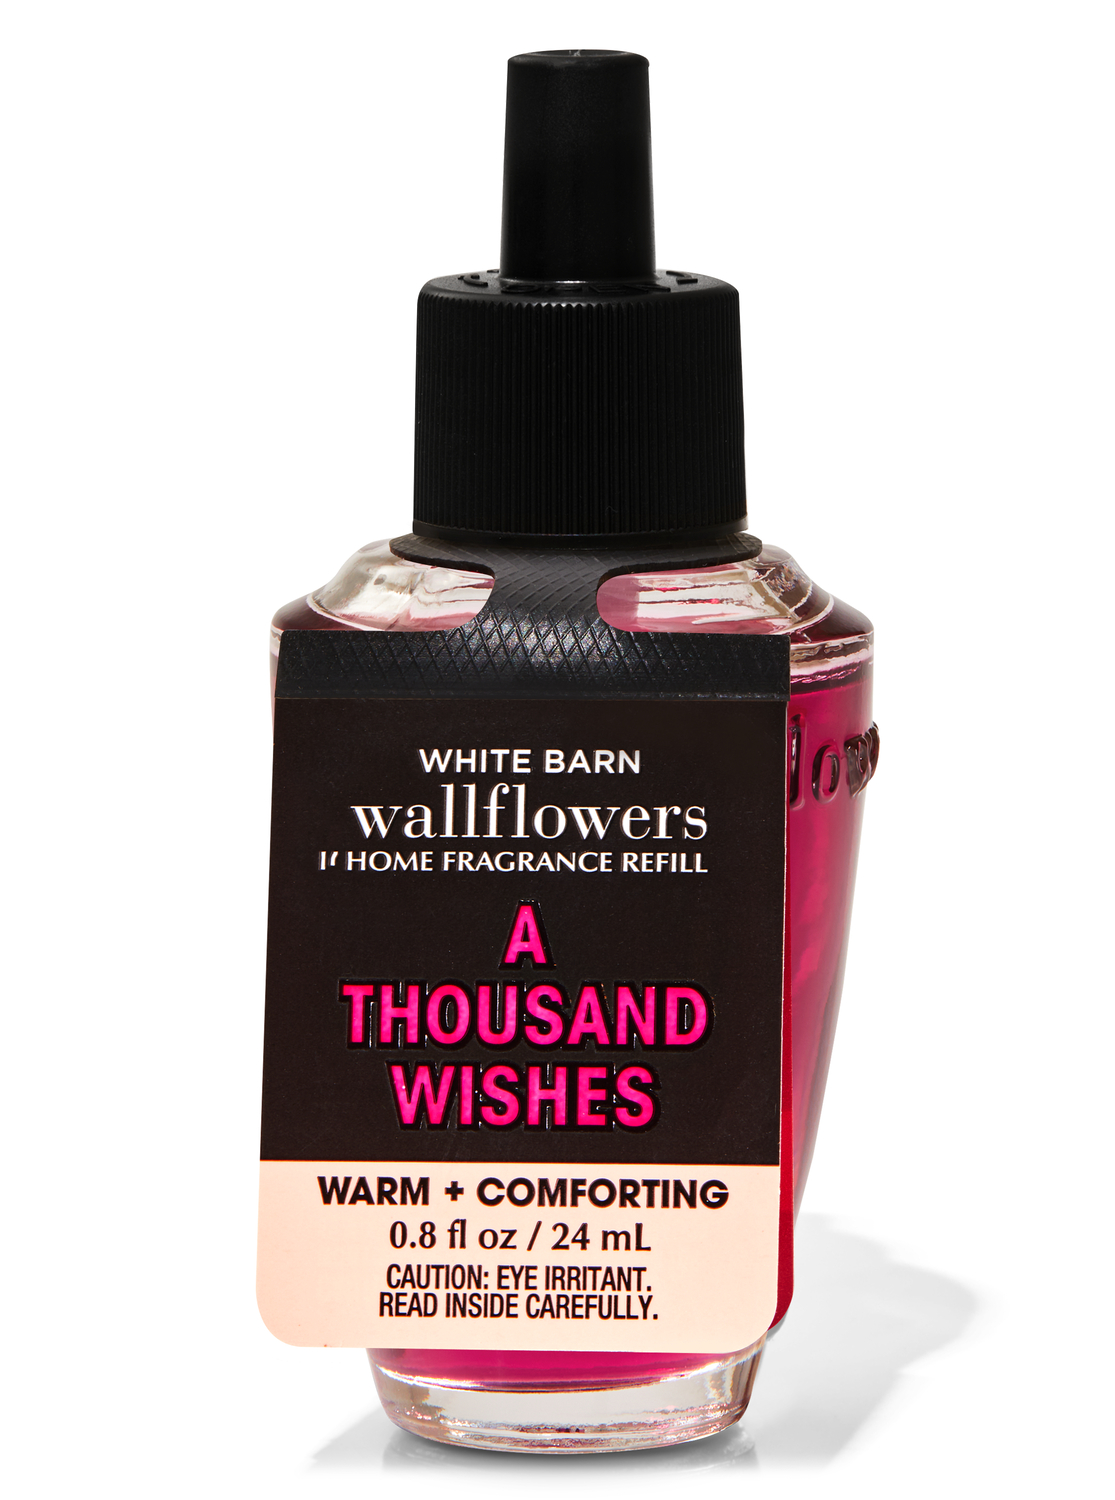 A thousand wishes wallflower refill